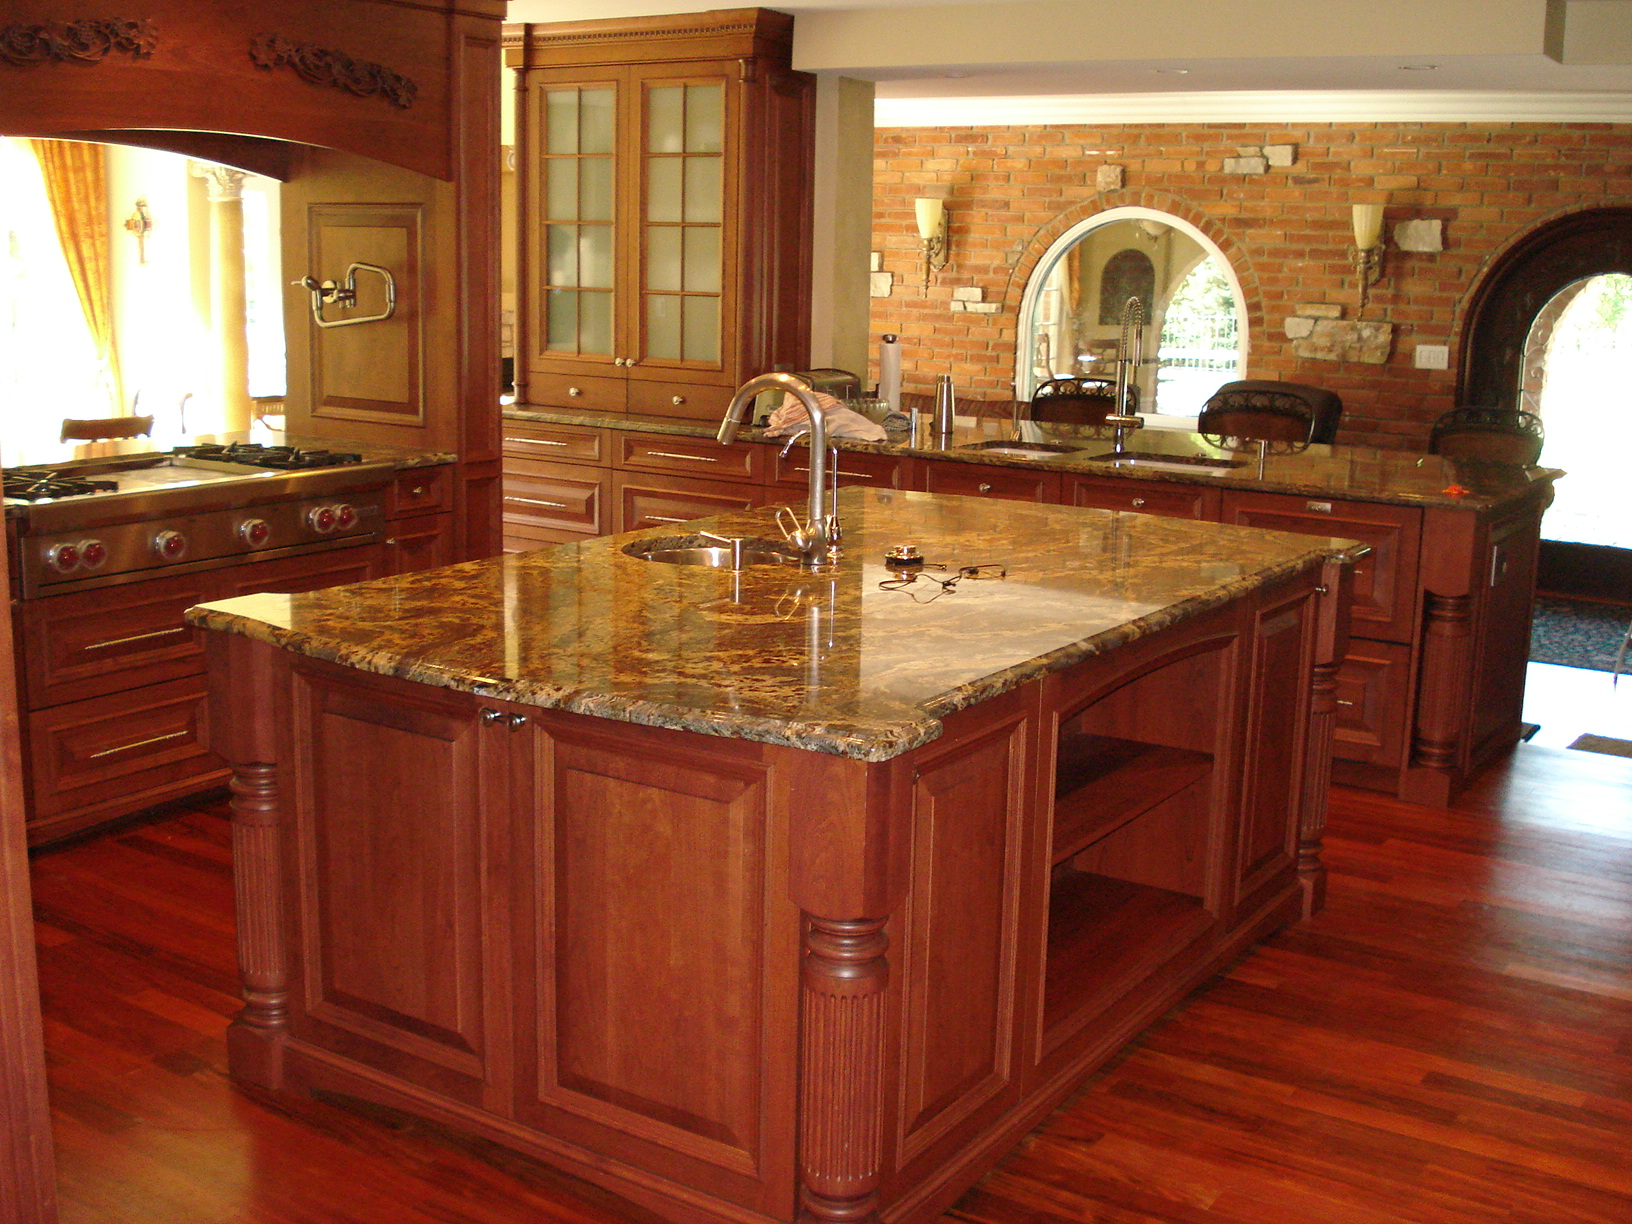 Remarkable Kitchen Counters Granite Countertops 1632 x 1224 · 807 kB · jpeg